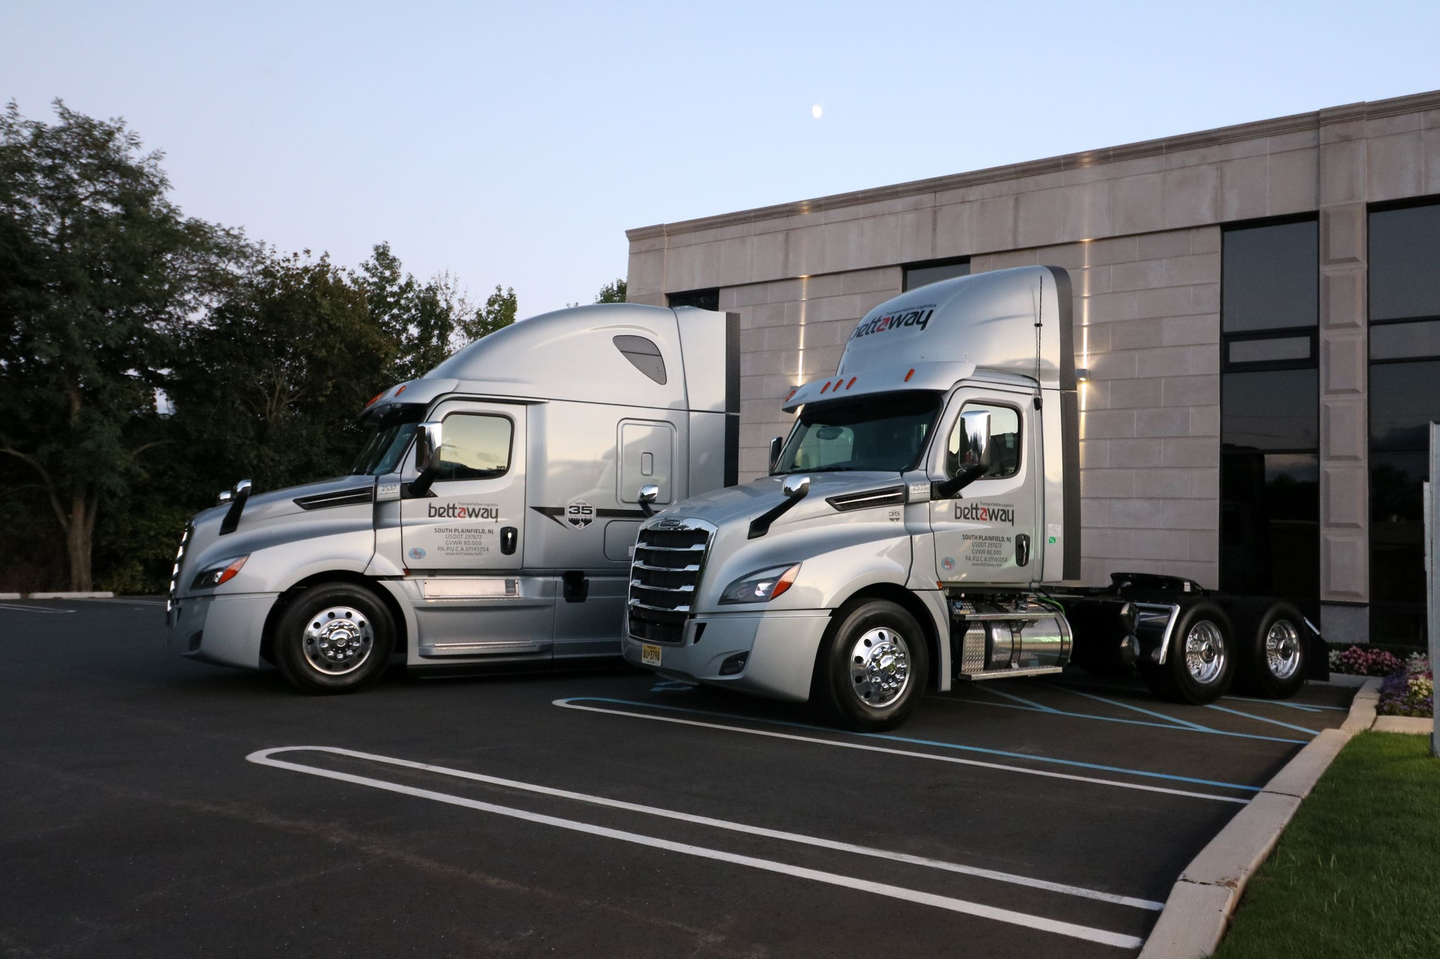 Bettaway's fleet of 150 Freightliner Cascadias are equipped with collision avoidance to prevent crashes, and dash cams to understand how crashes happened.